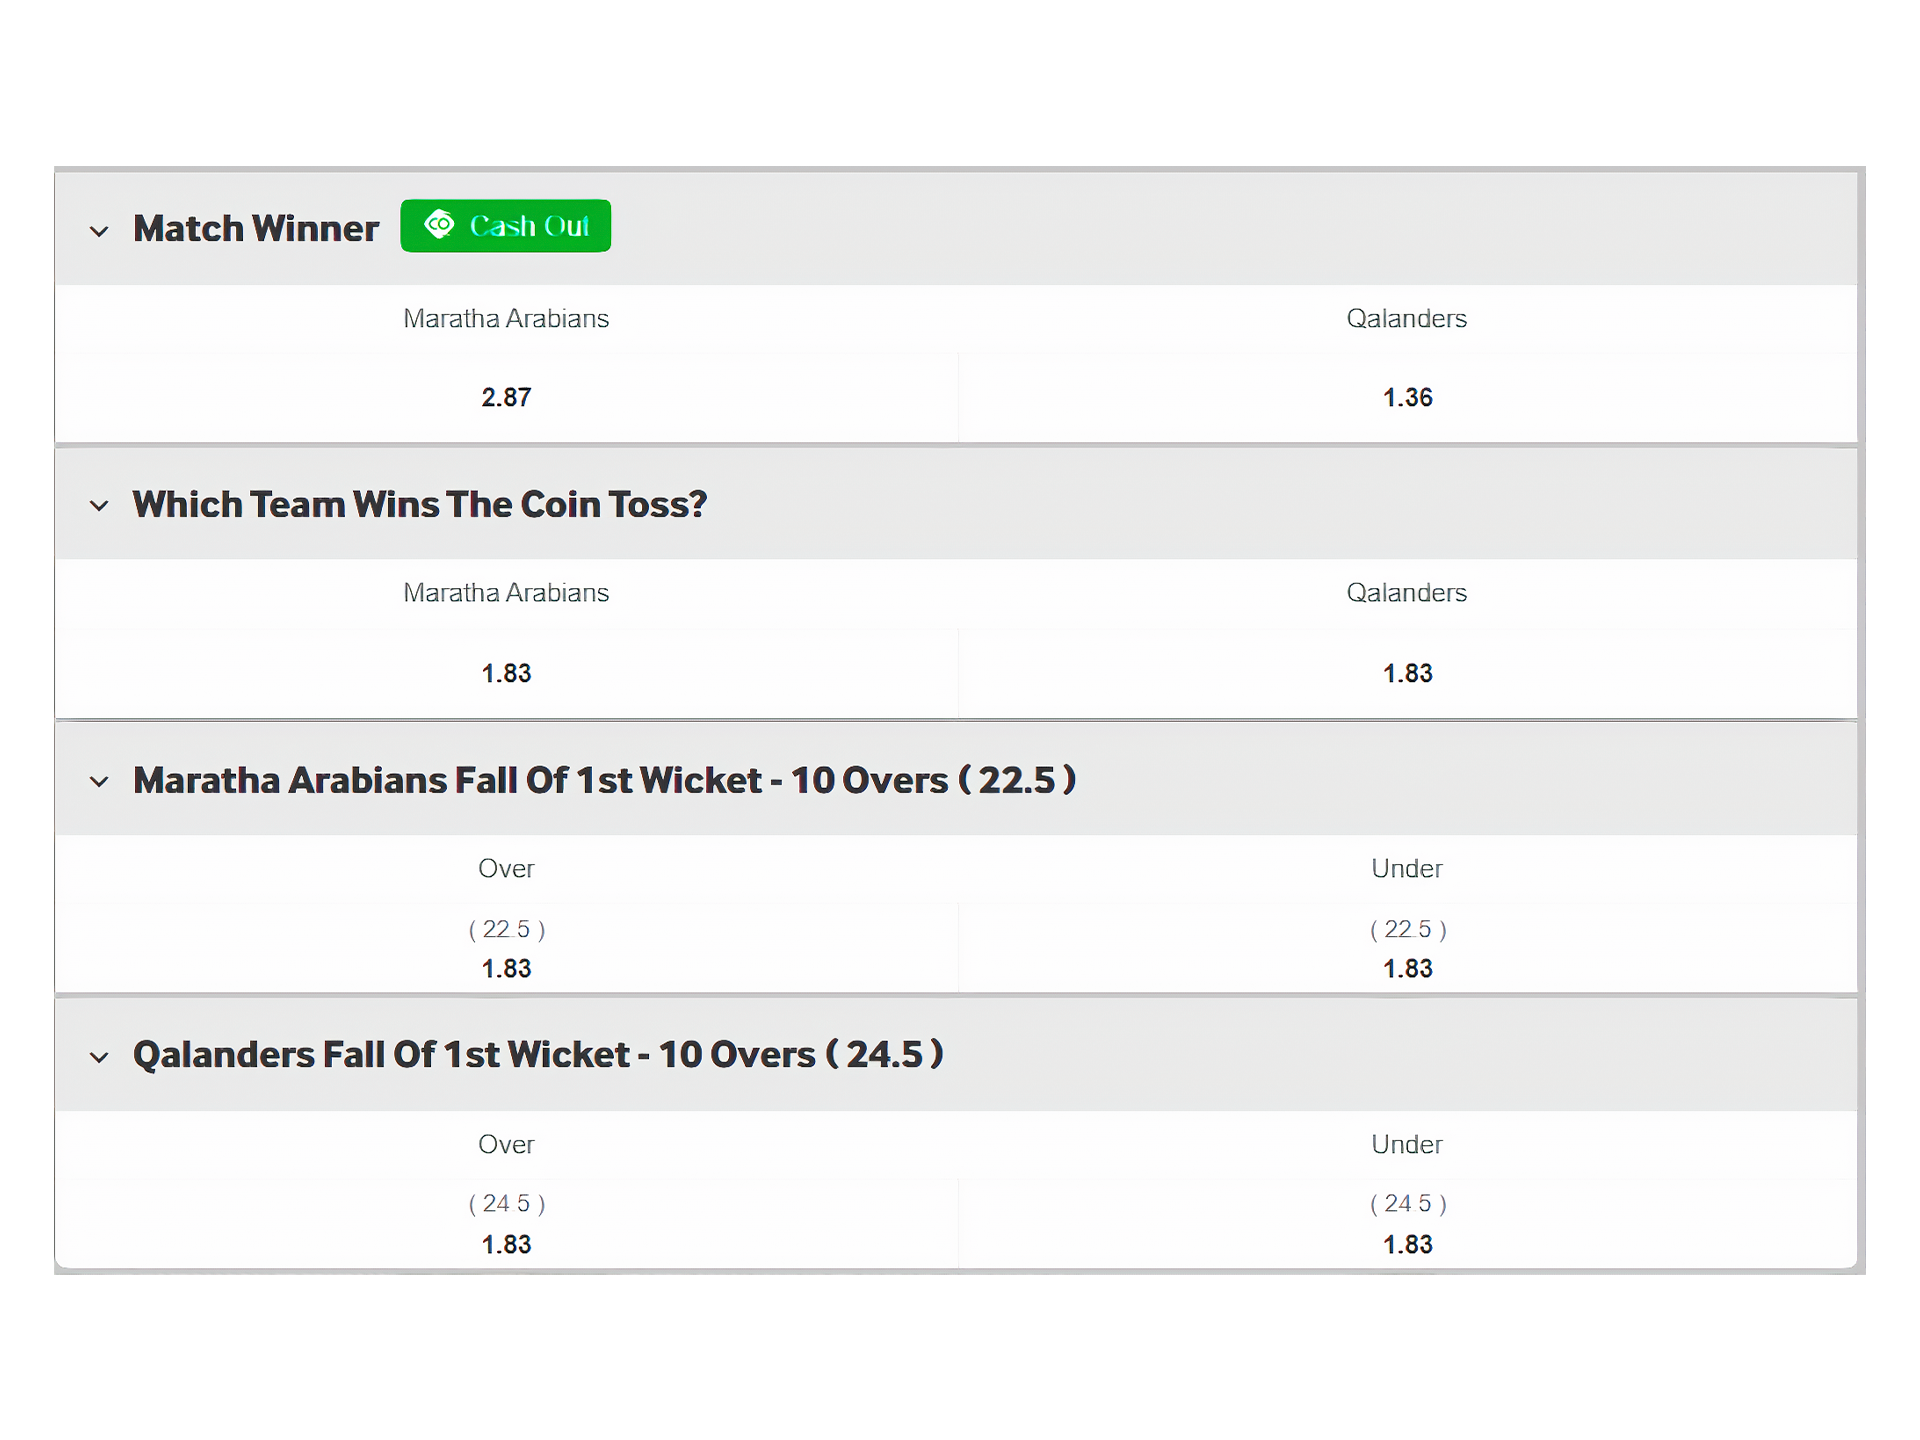 There are a lot of options to bet on cricket at Betway.